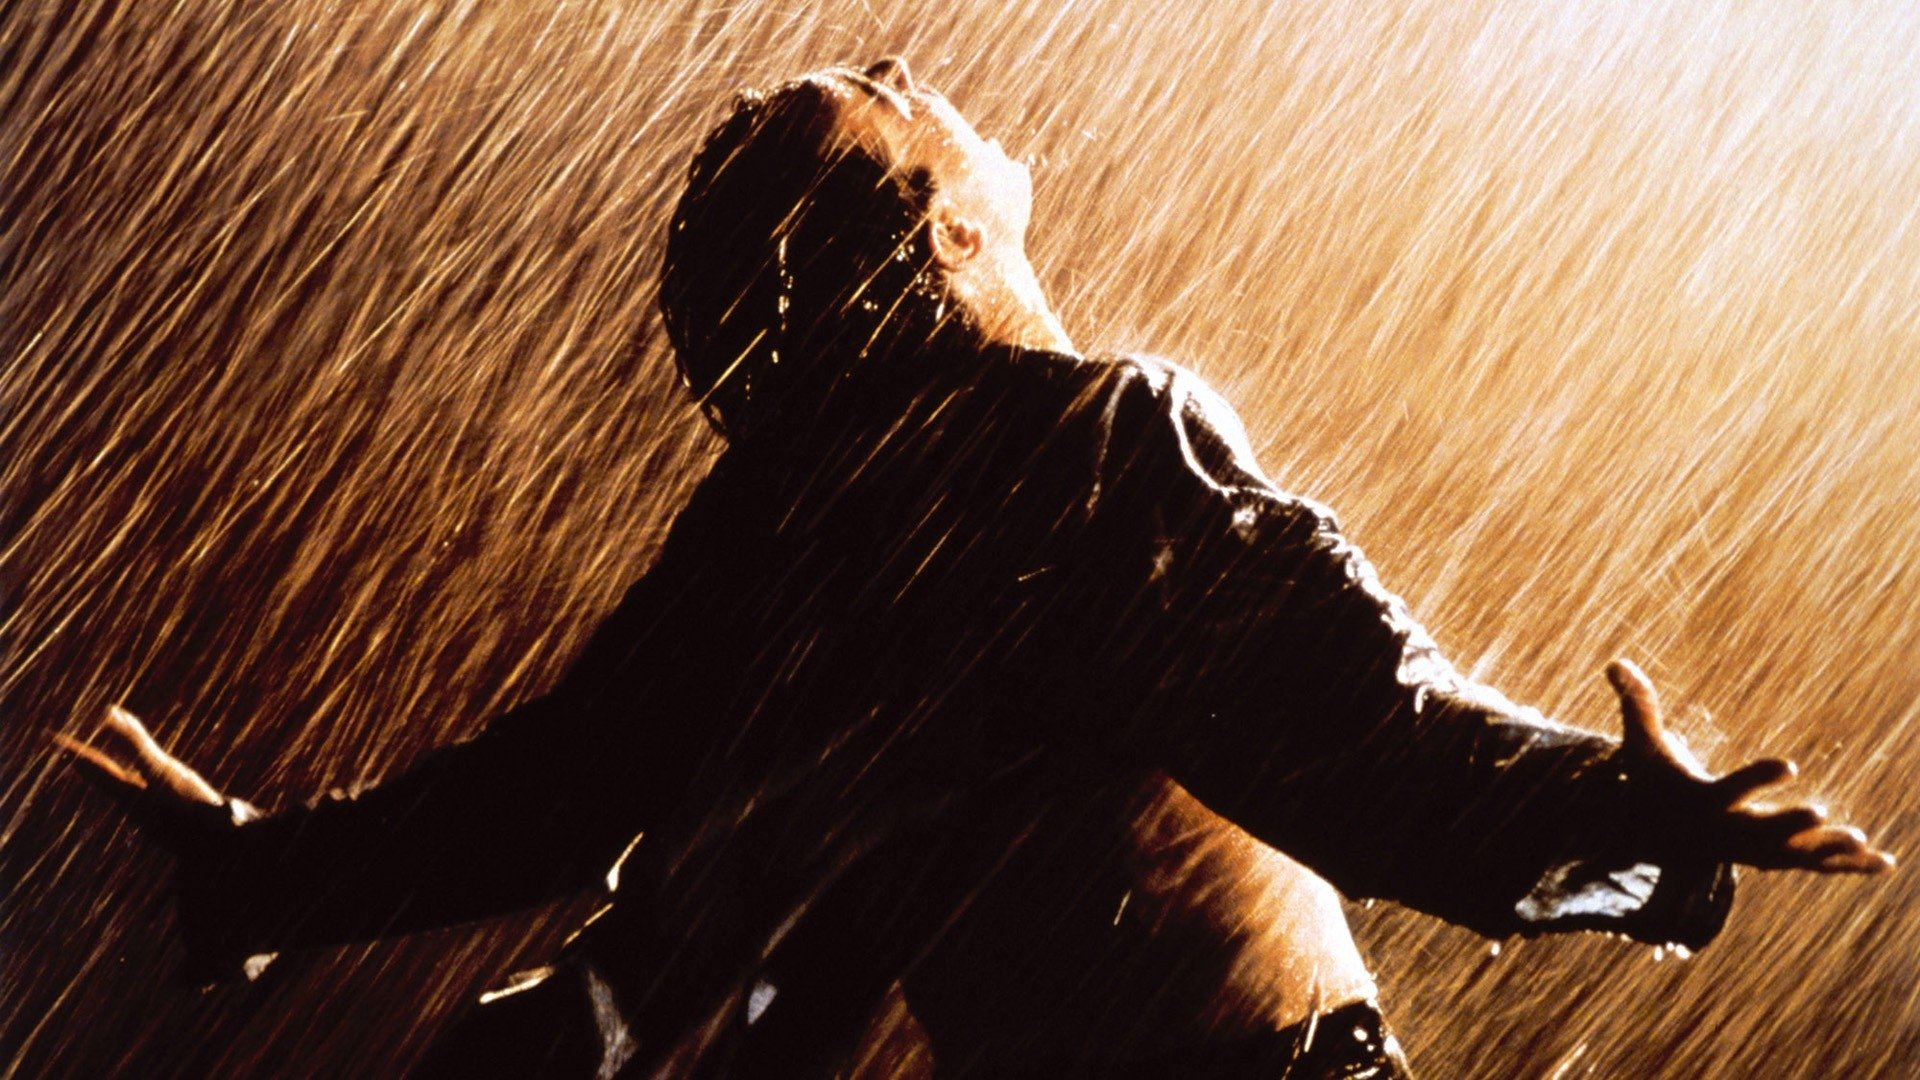 19 The Shawshank Redemption HD Wallpapers Background Images 1920x1080